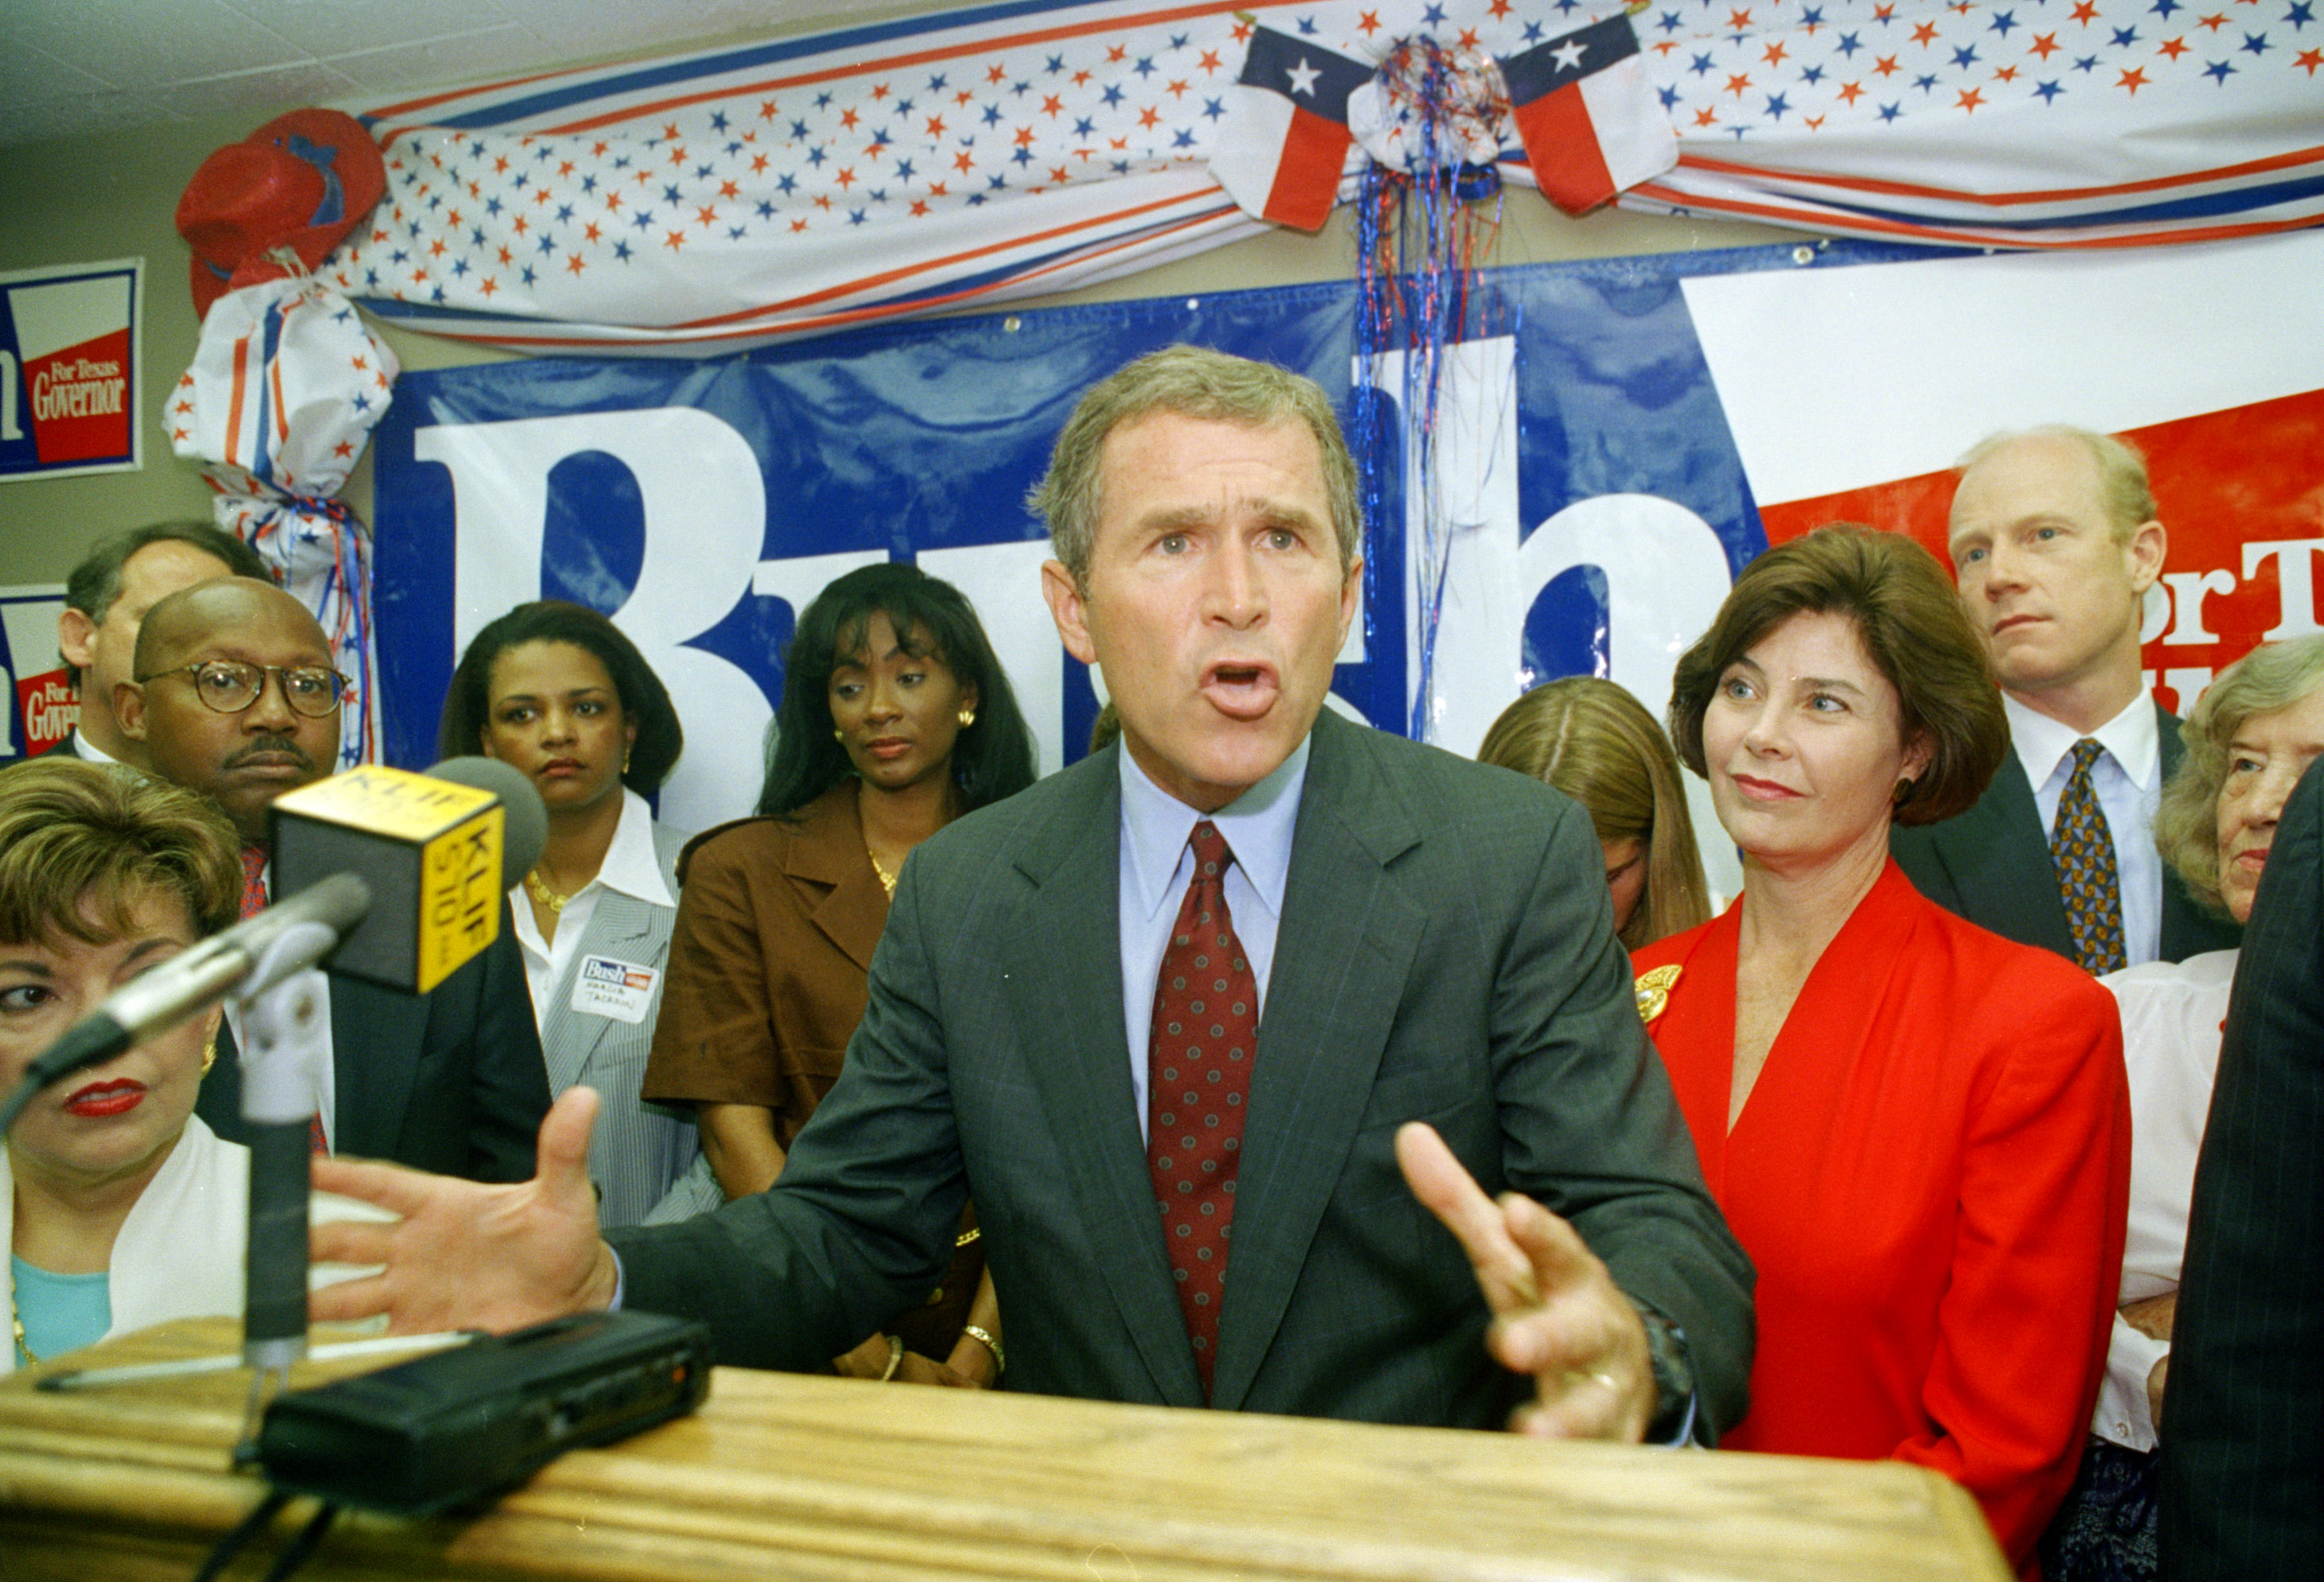 <div class='meta'><div class='origin-logo' data-origin='none'></div><span class='caption-text' data-credit='ASSOCIATED PRESS'>Texas Republican gubernatorial candidate George W. Bush makes a point about Texas prisons as his wife Laura, right, listens during the opening of his Dallas campaign headquarters.</span></div>